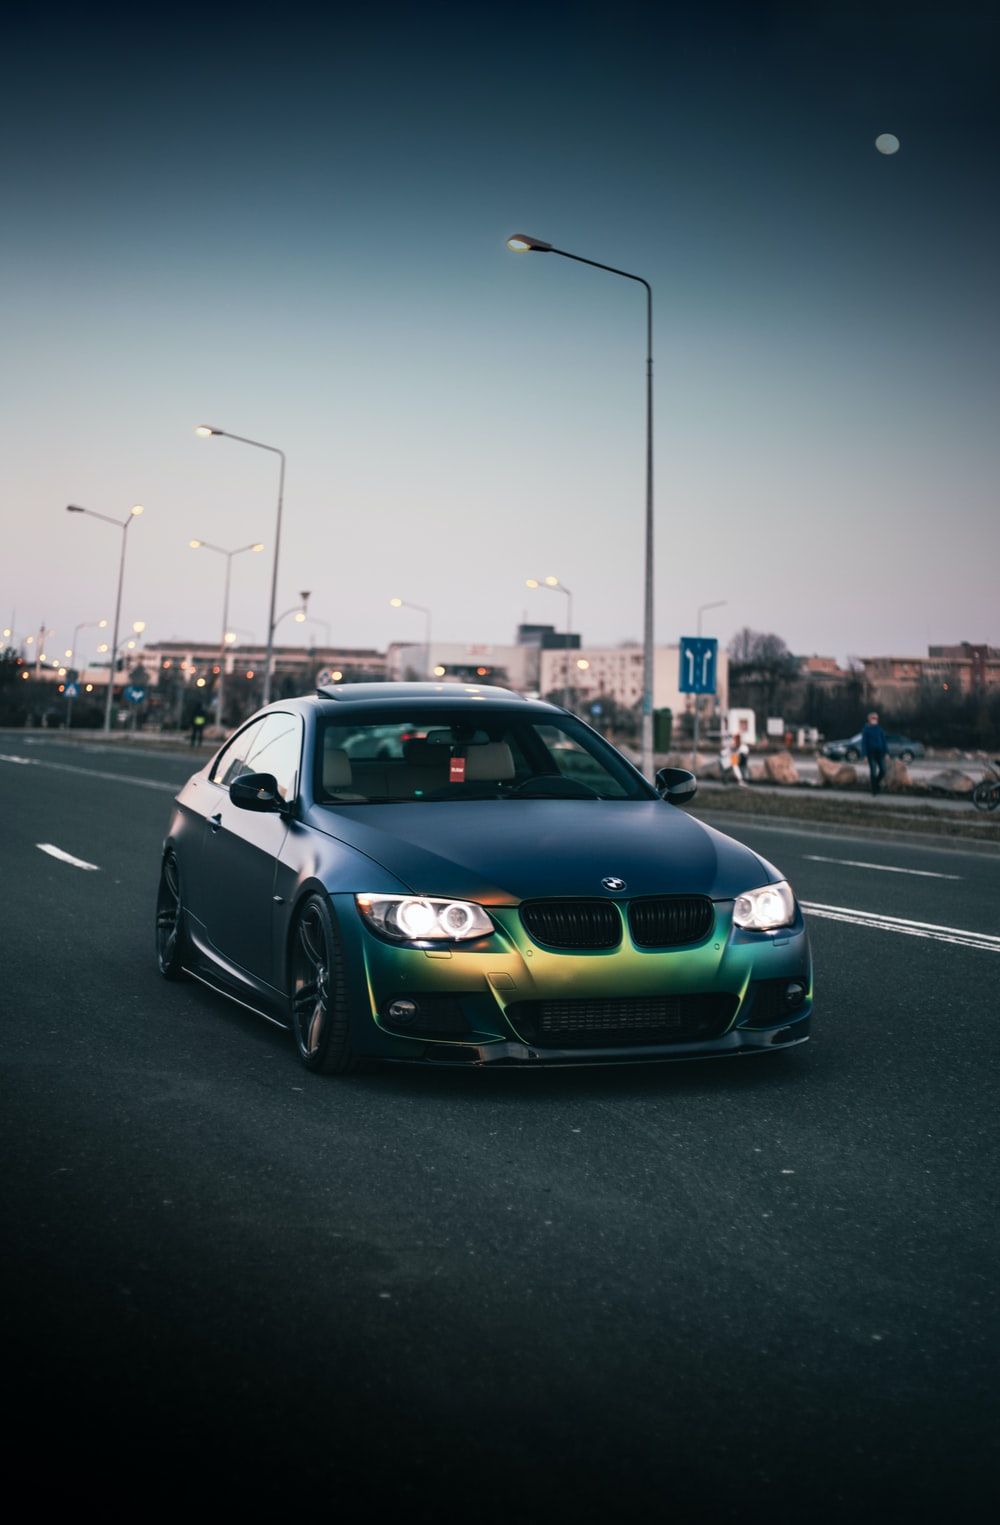 black bmw m 3 on road during daytime